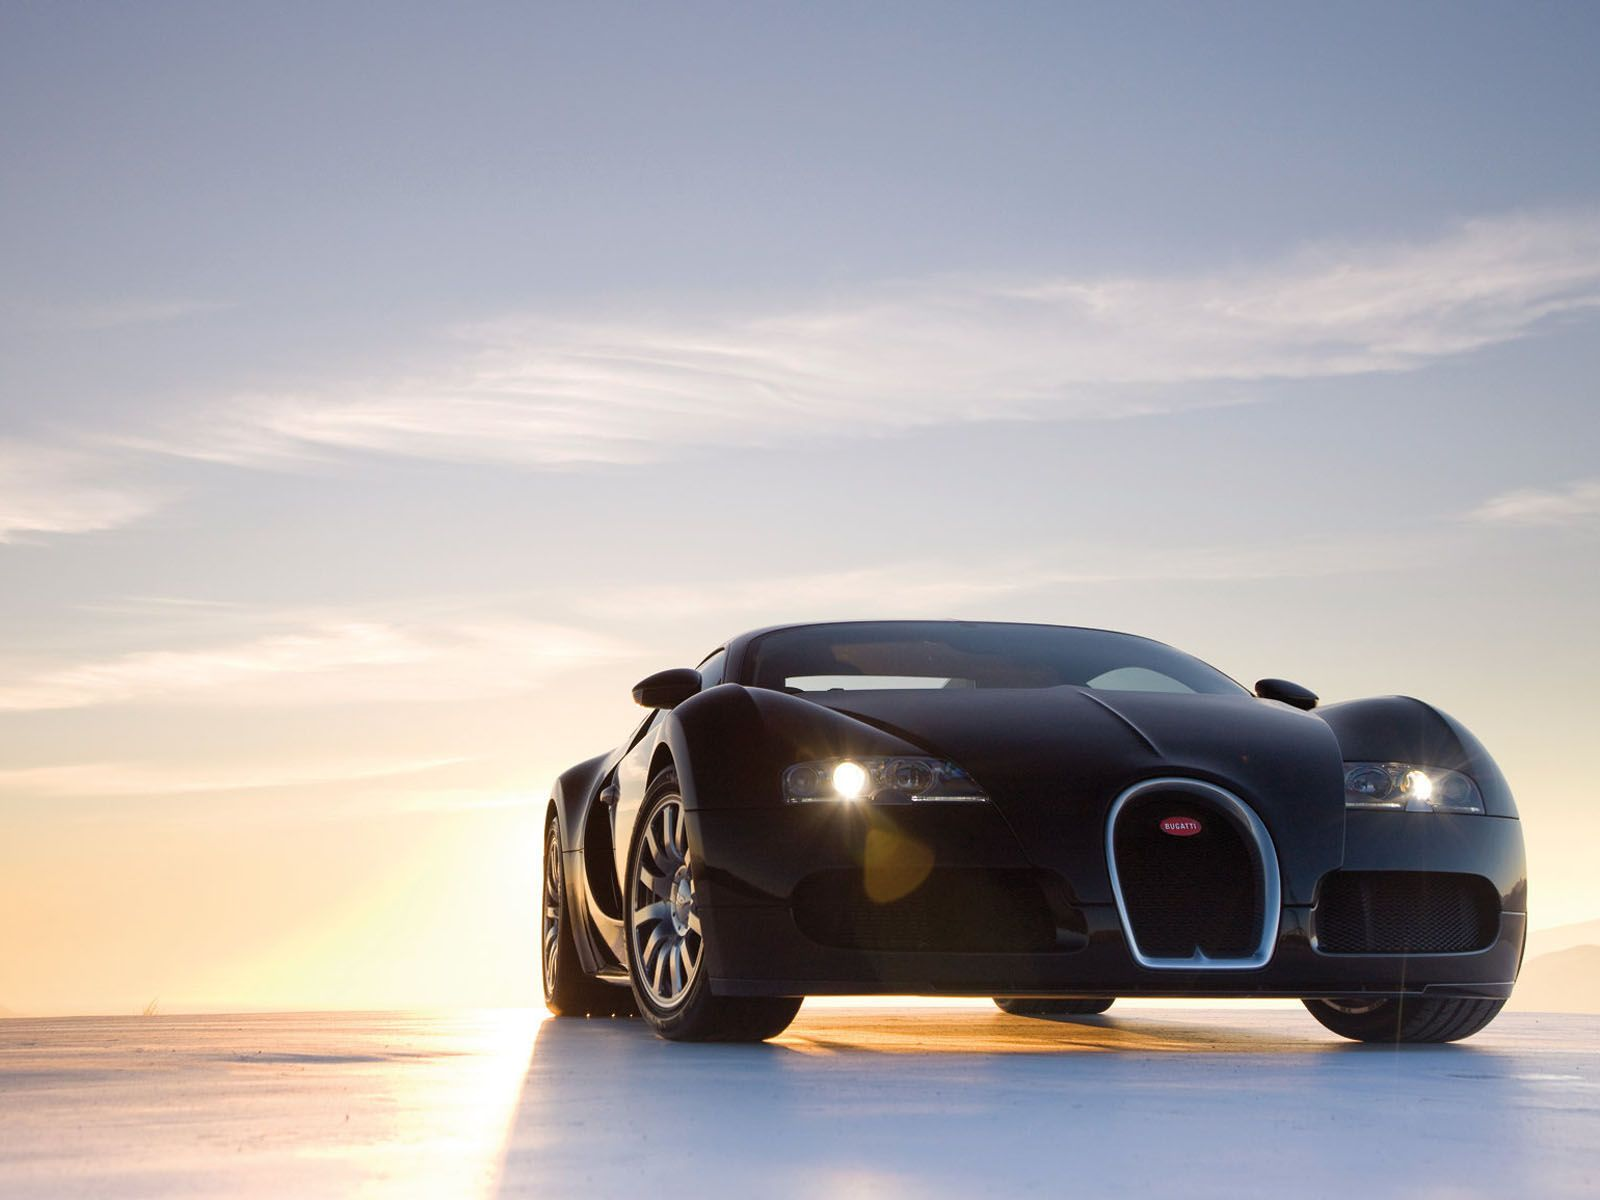 d bugatti veyron wallpaper android apps on google play